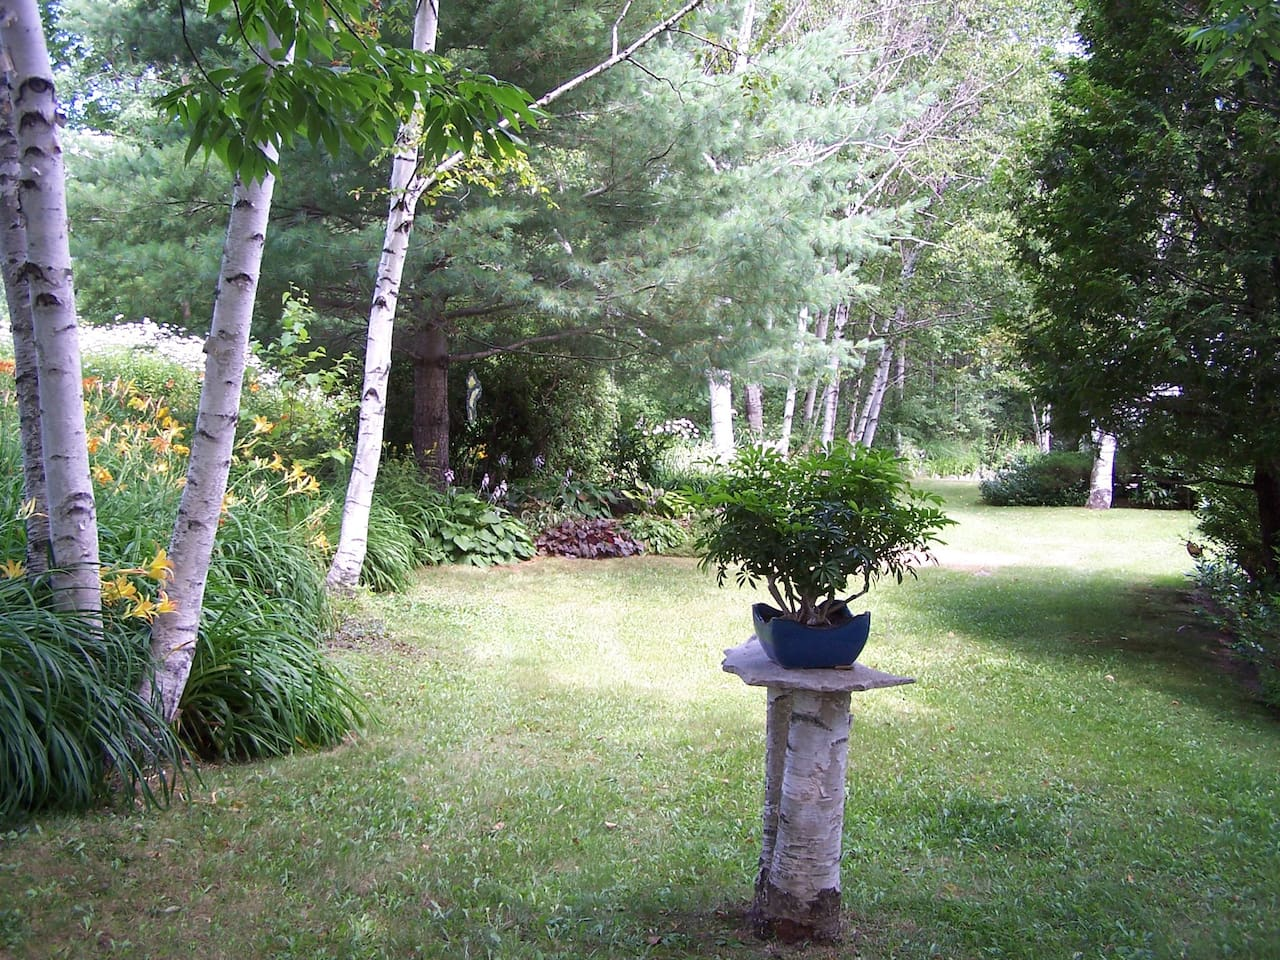 Bonsai and day lilies among the birches